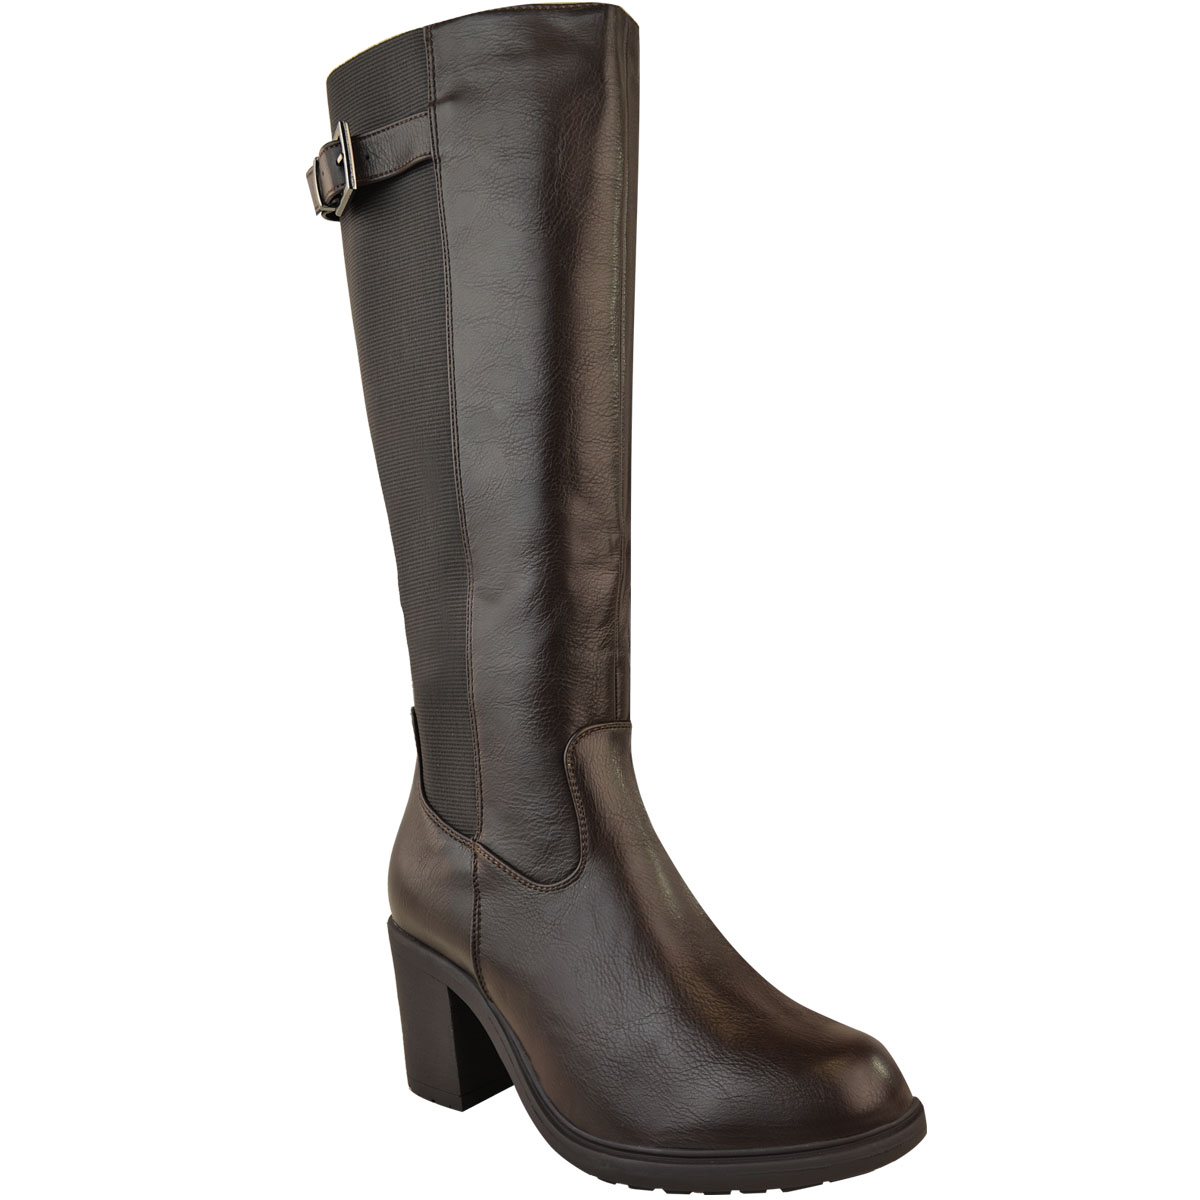 Womens-Ladies-Calf-High-Boots-Riding-Stretch-Wide-Leg-Low-Block-Heel-Winter-Size thumbnail 8